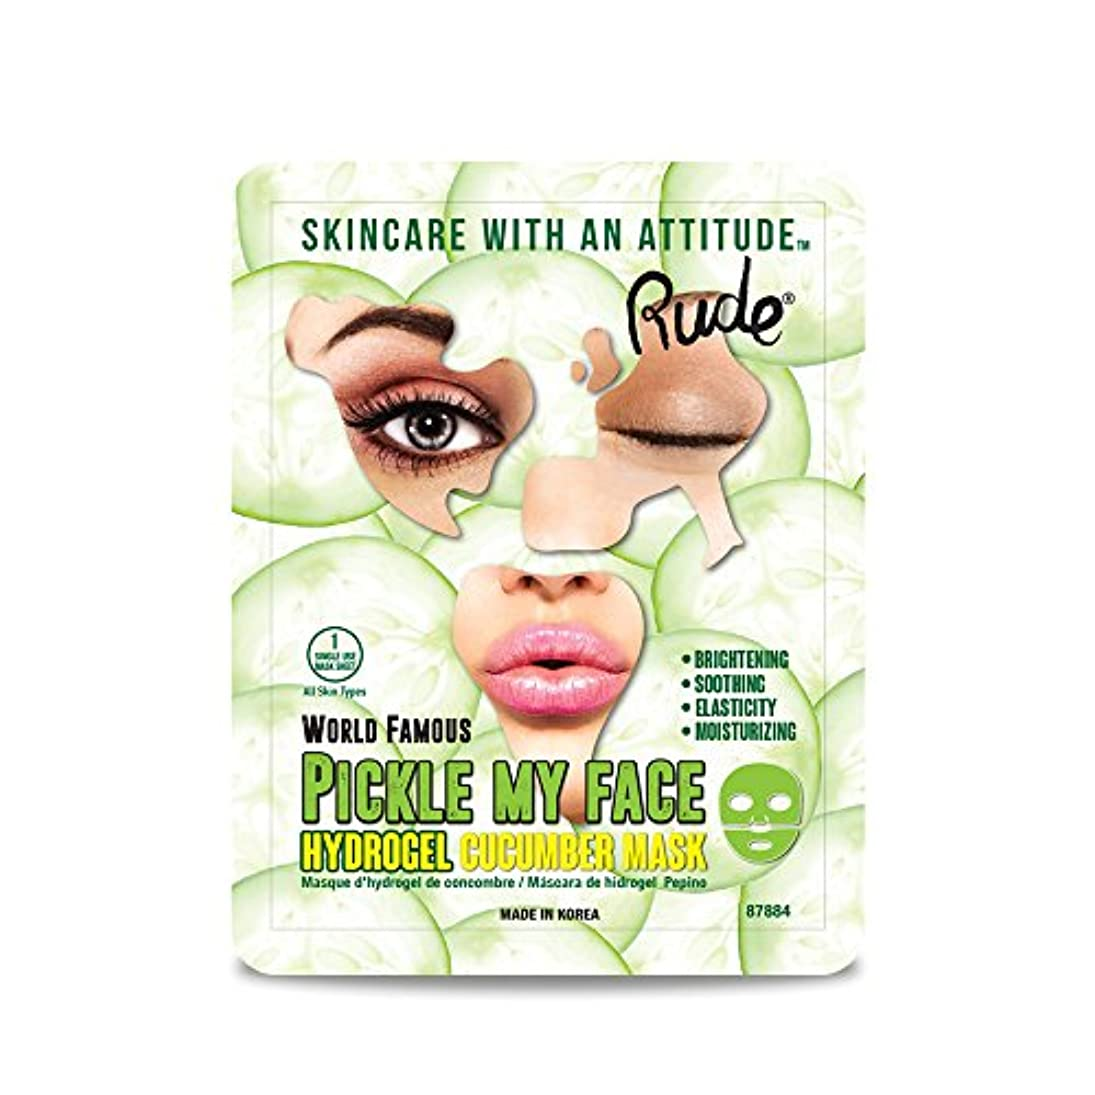 (3 Pack) RUDE Pickle My Face Hydrogel Cucumber Mask (並行輸入品)